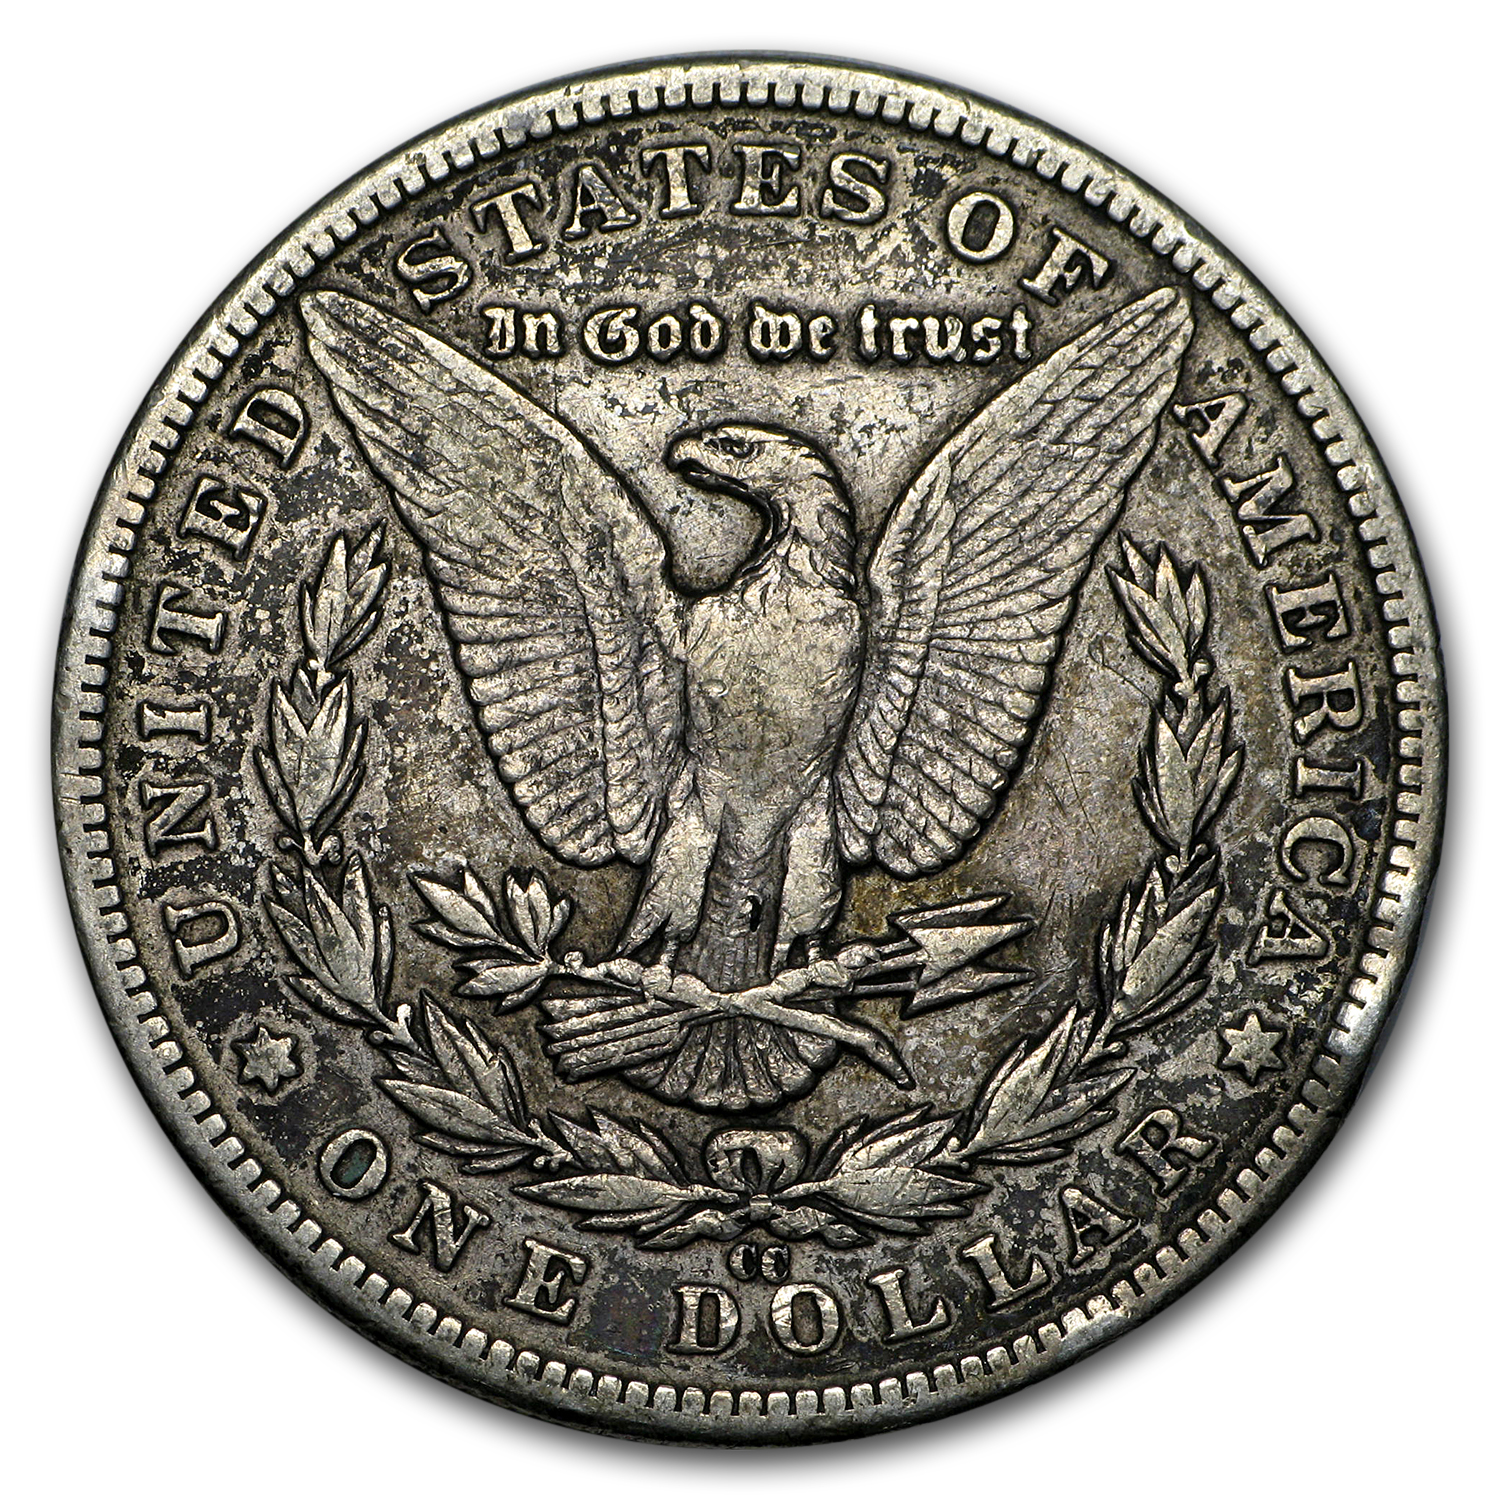 1883-CC Morgan Dollar - Very Fine